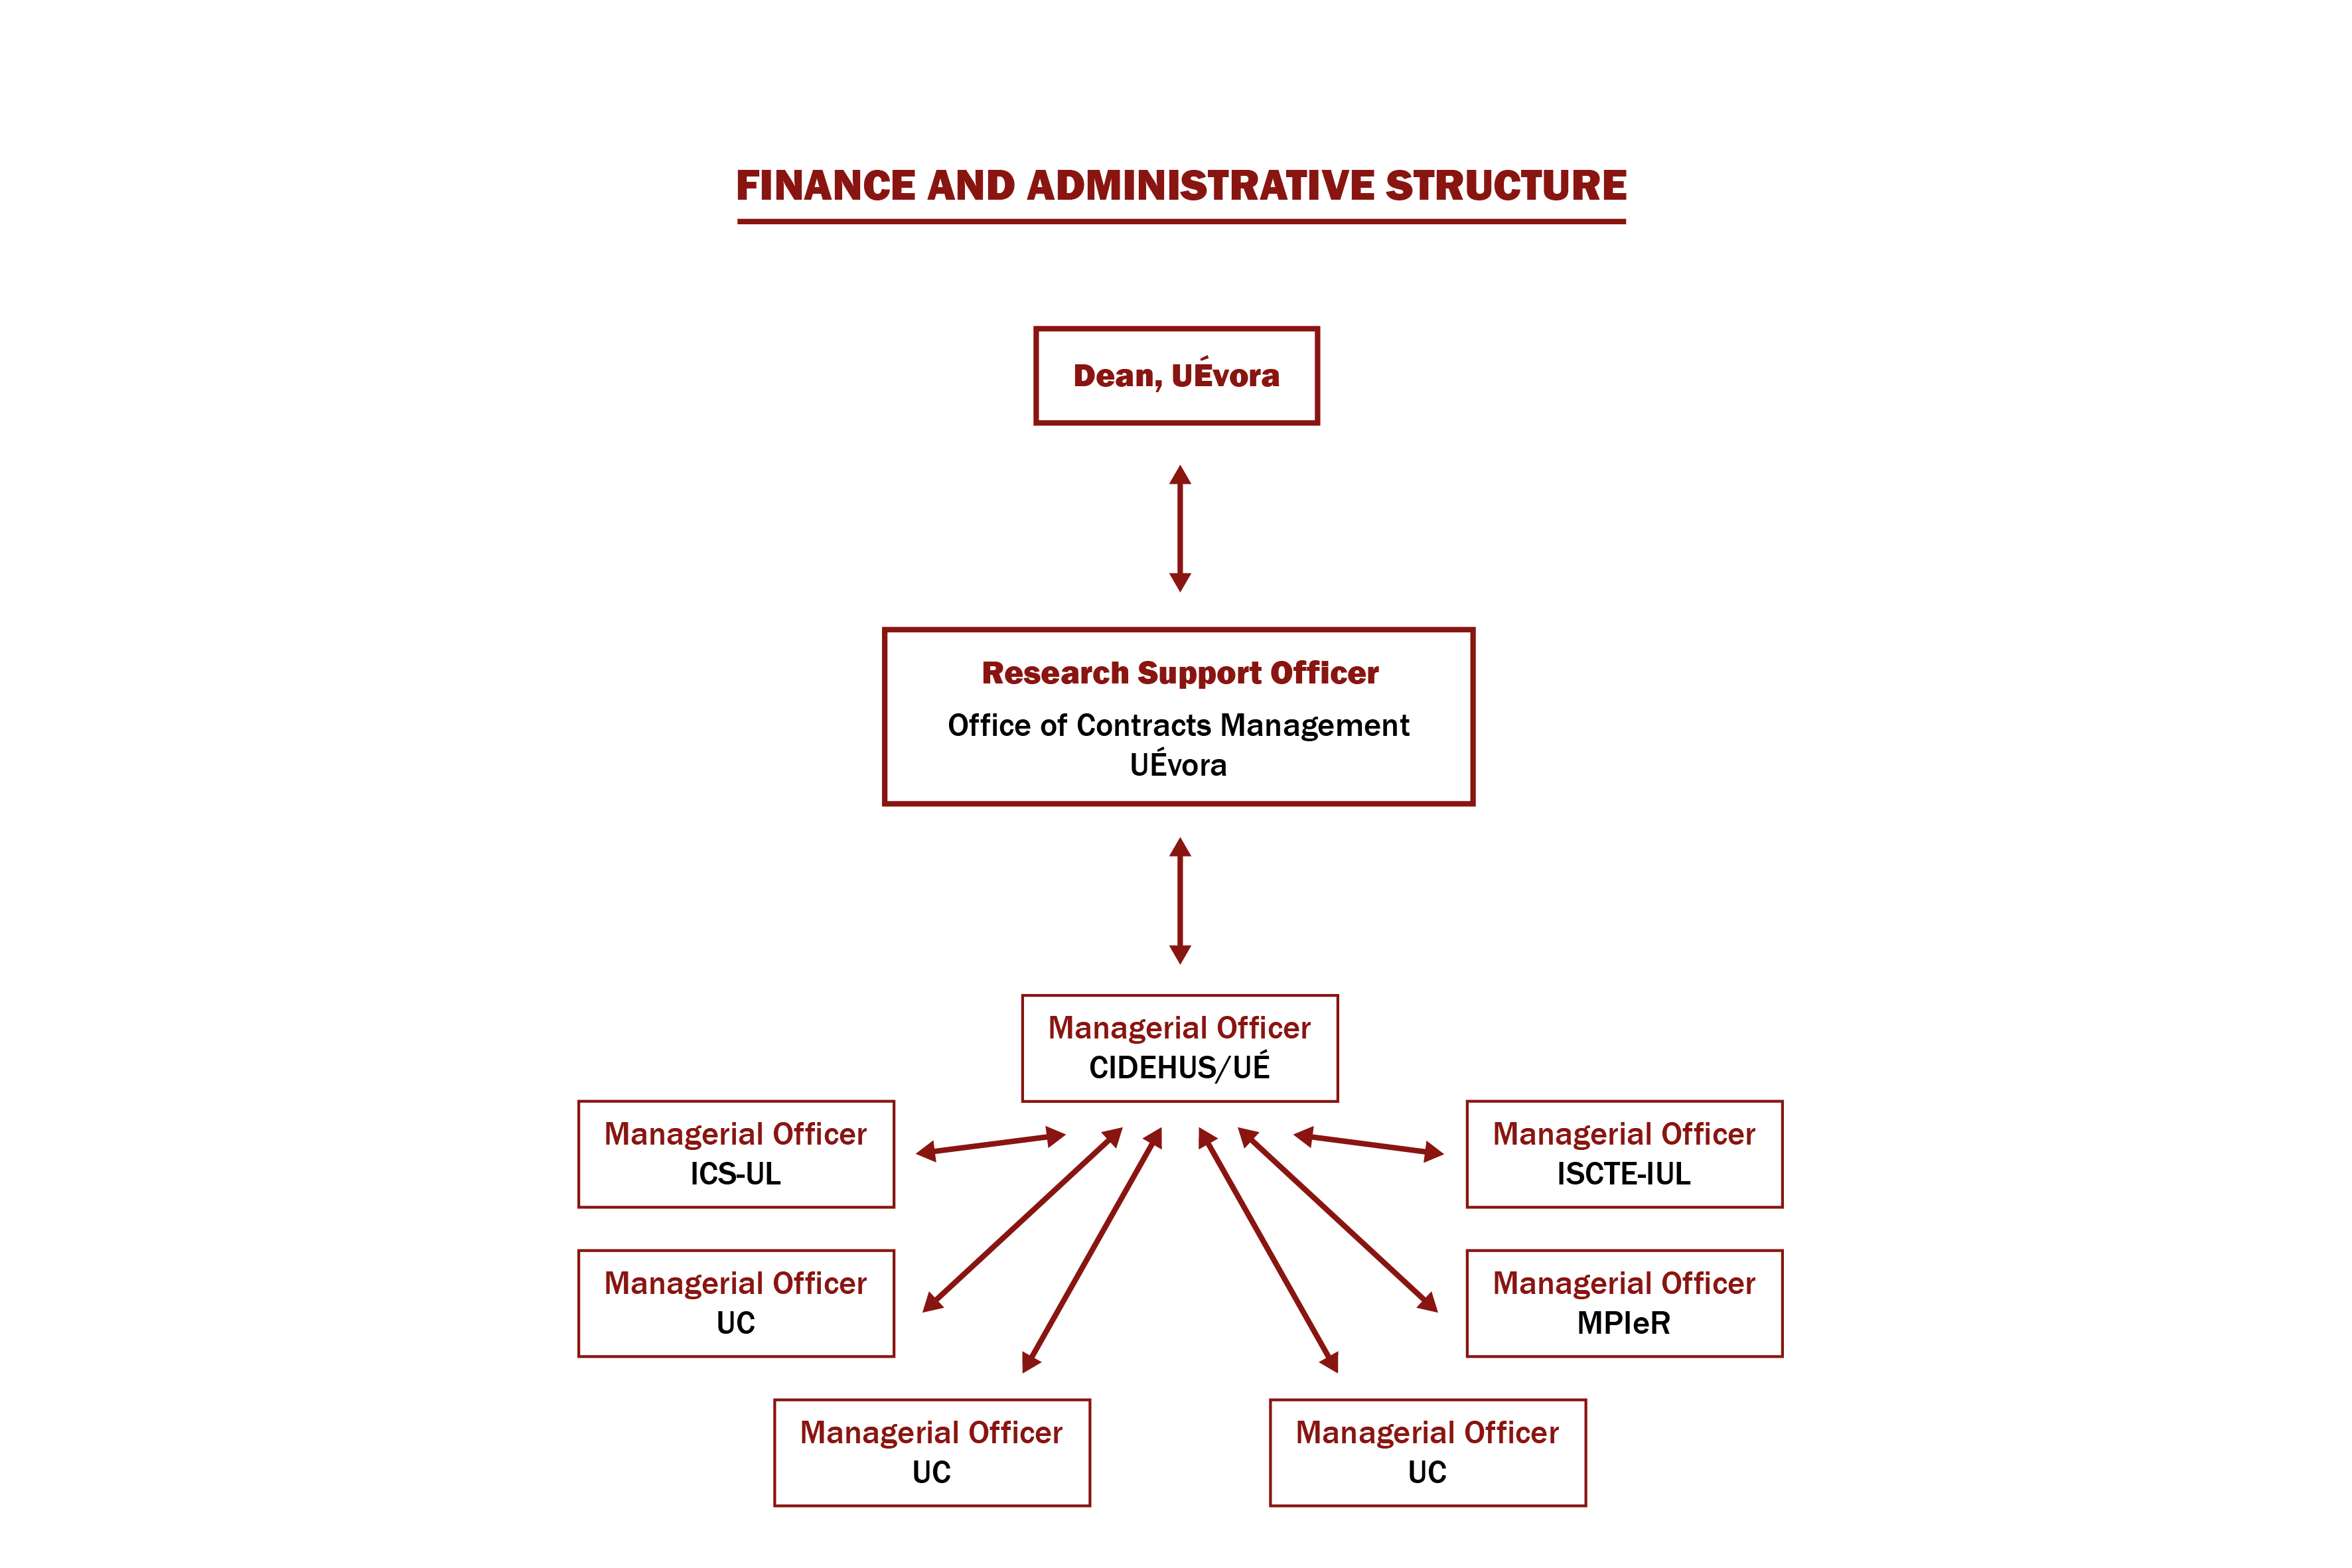 Finance and Administrative Structure